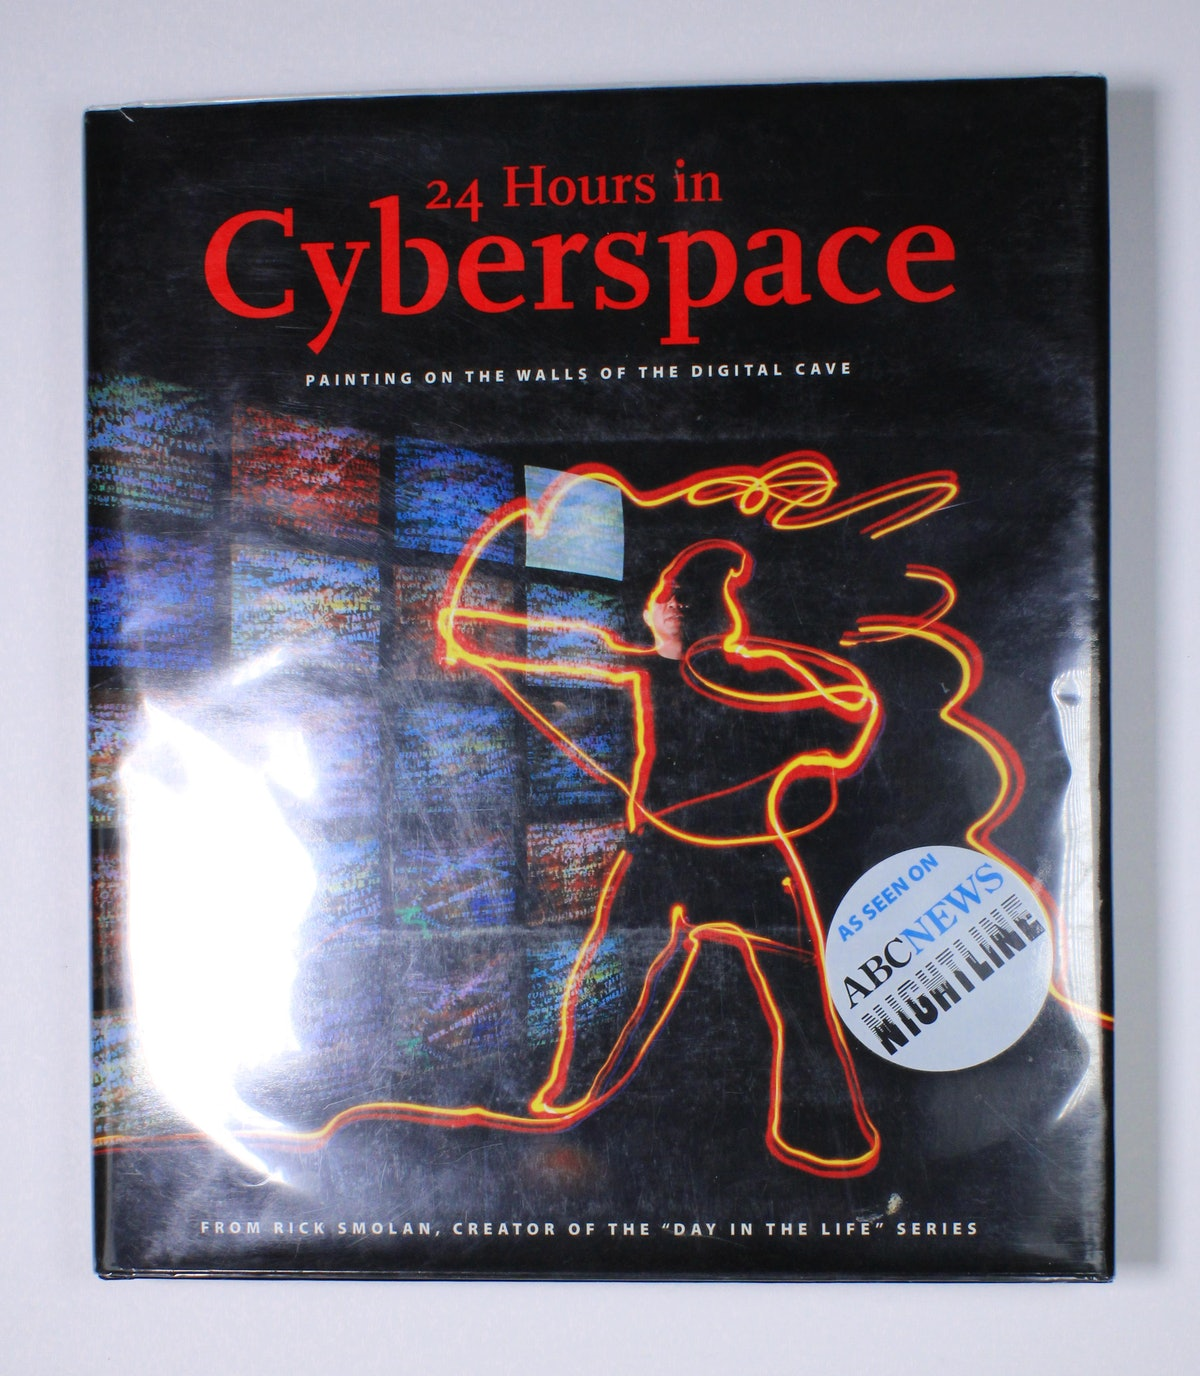 24 Hours in Cyberspace